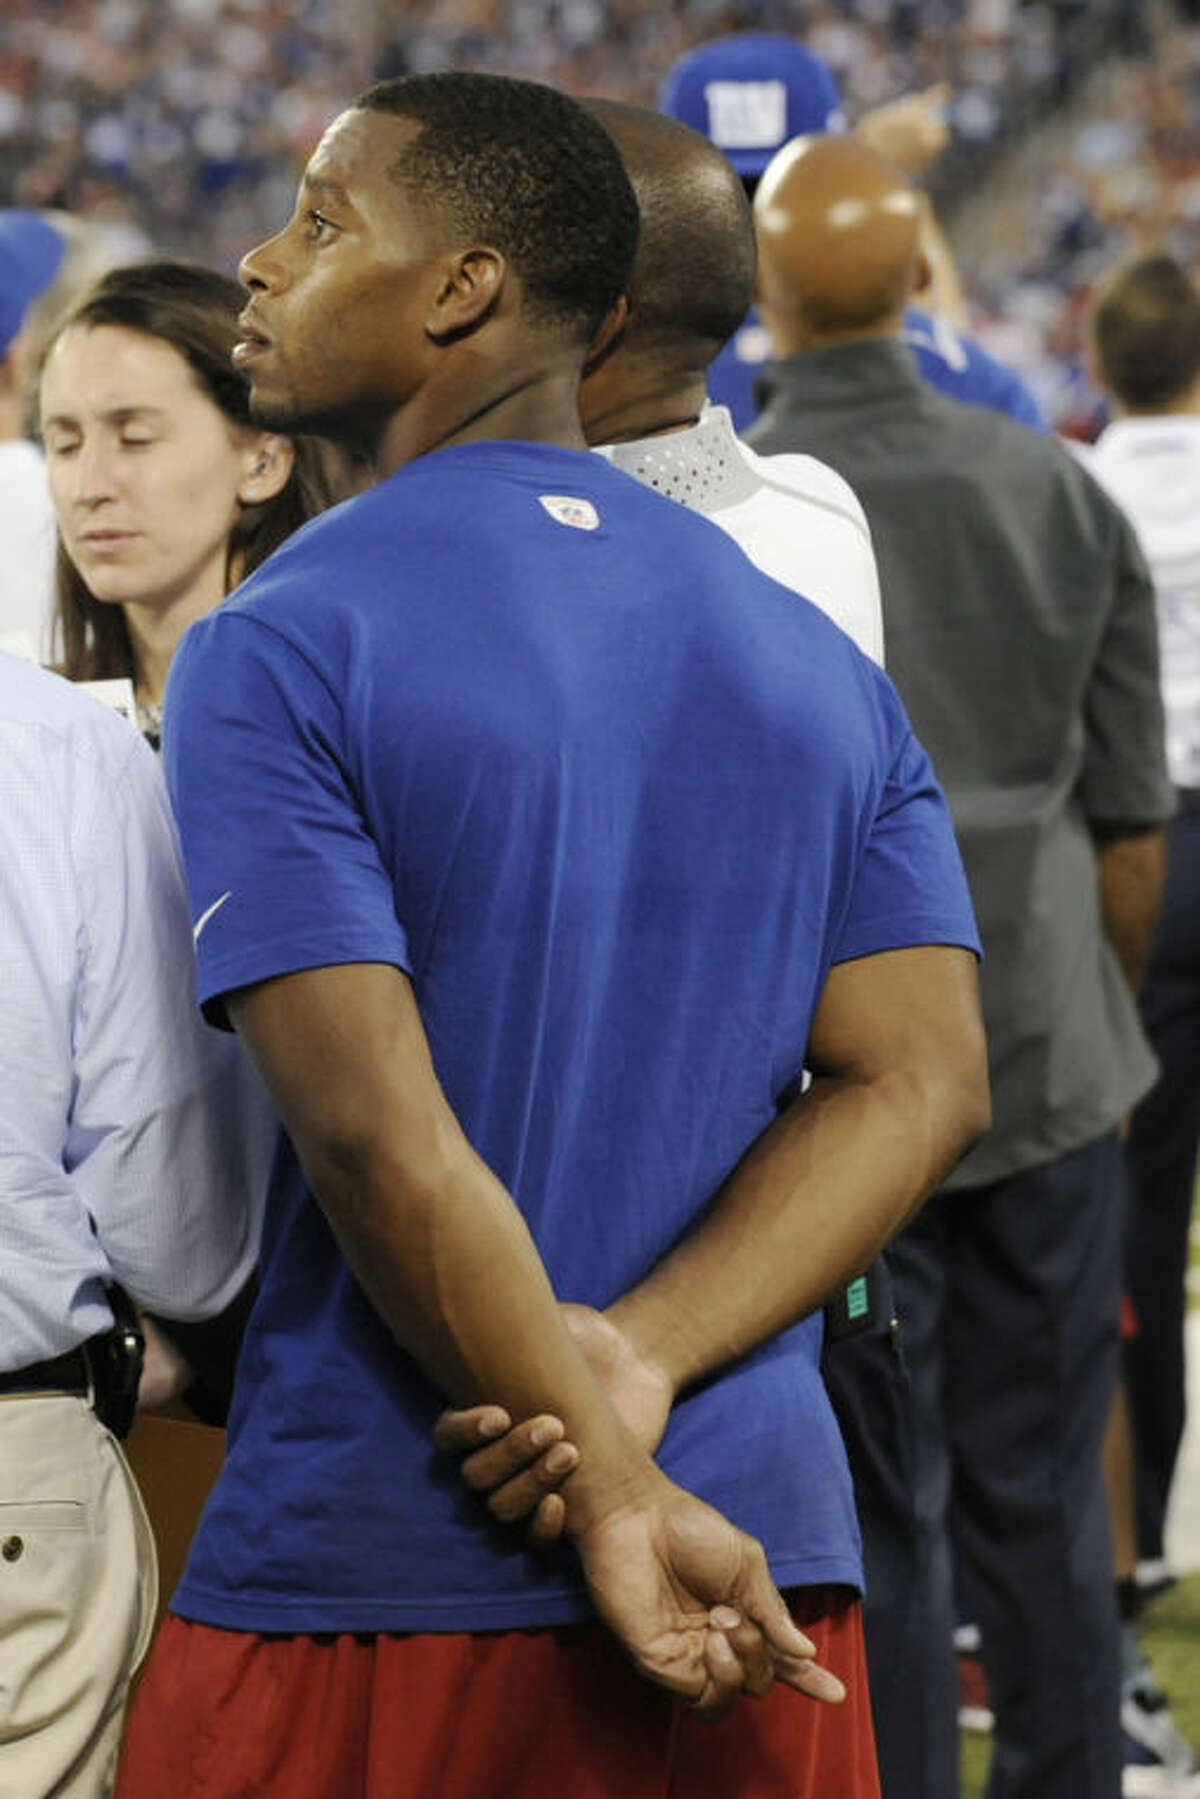 New York Giants wide receiver Victor Cruz (80) watches during the first half of an NFL preseason football game against the Indianapolis Colts, Sunday, Aug. 18, 2013, in East Rutherford, N.J. (AP Photo/Bill Kostroun)